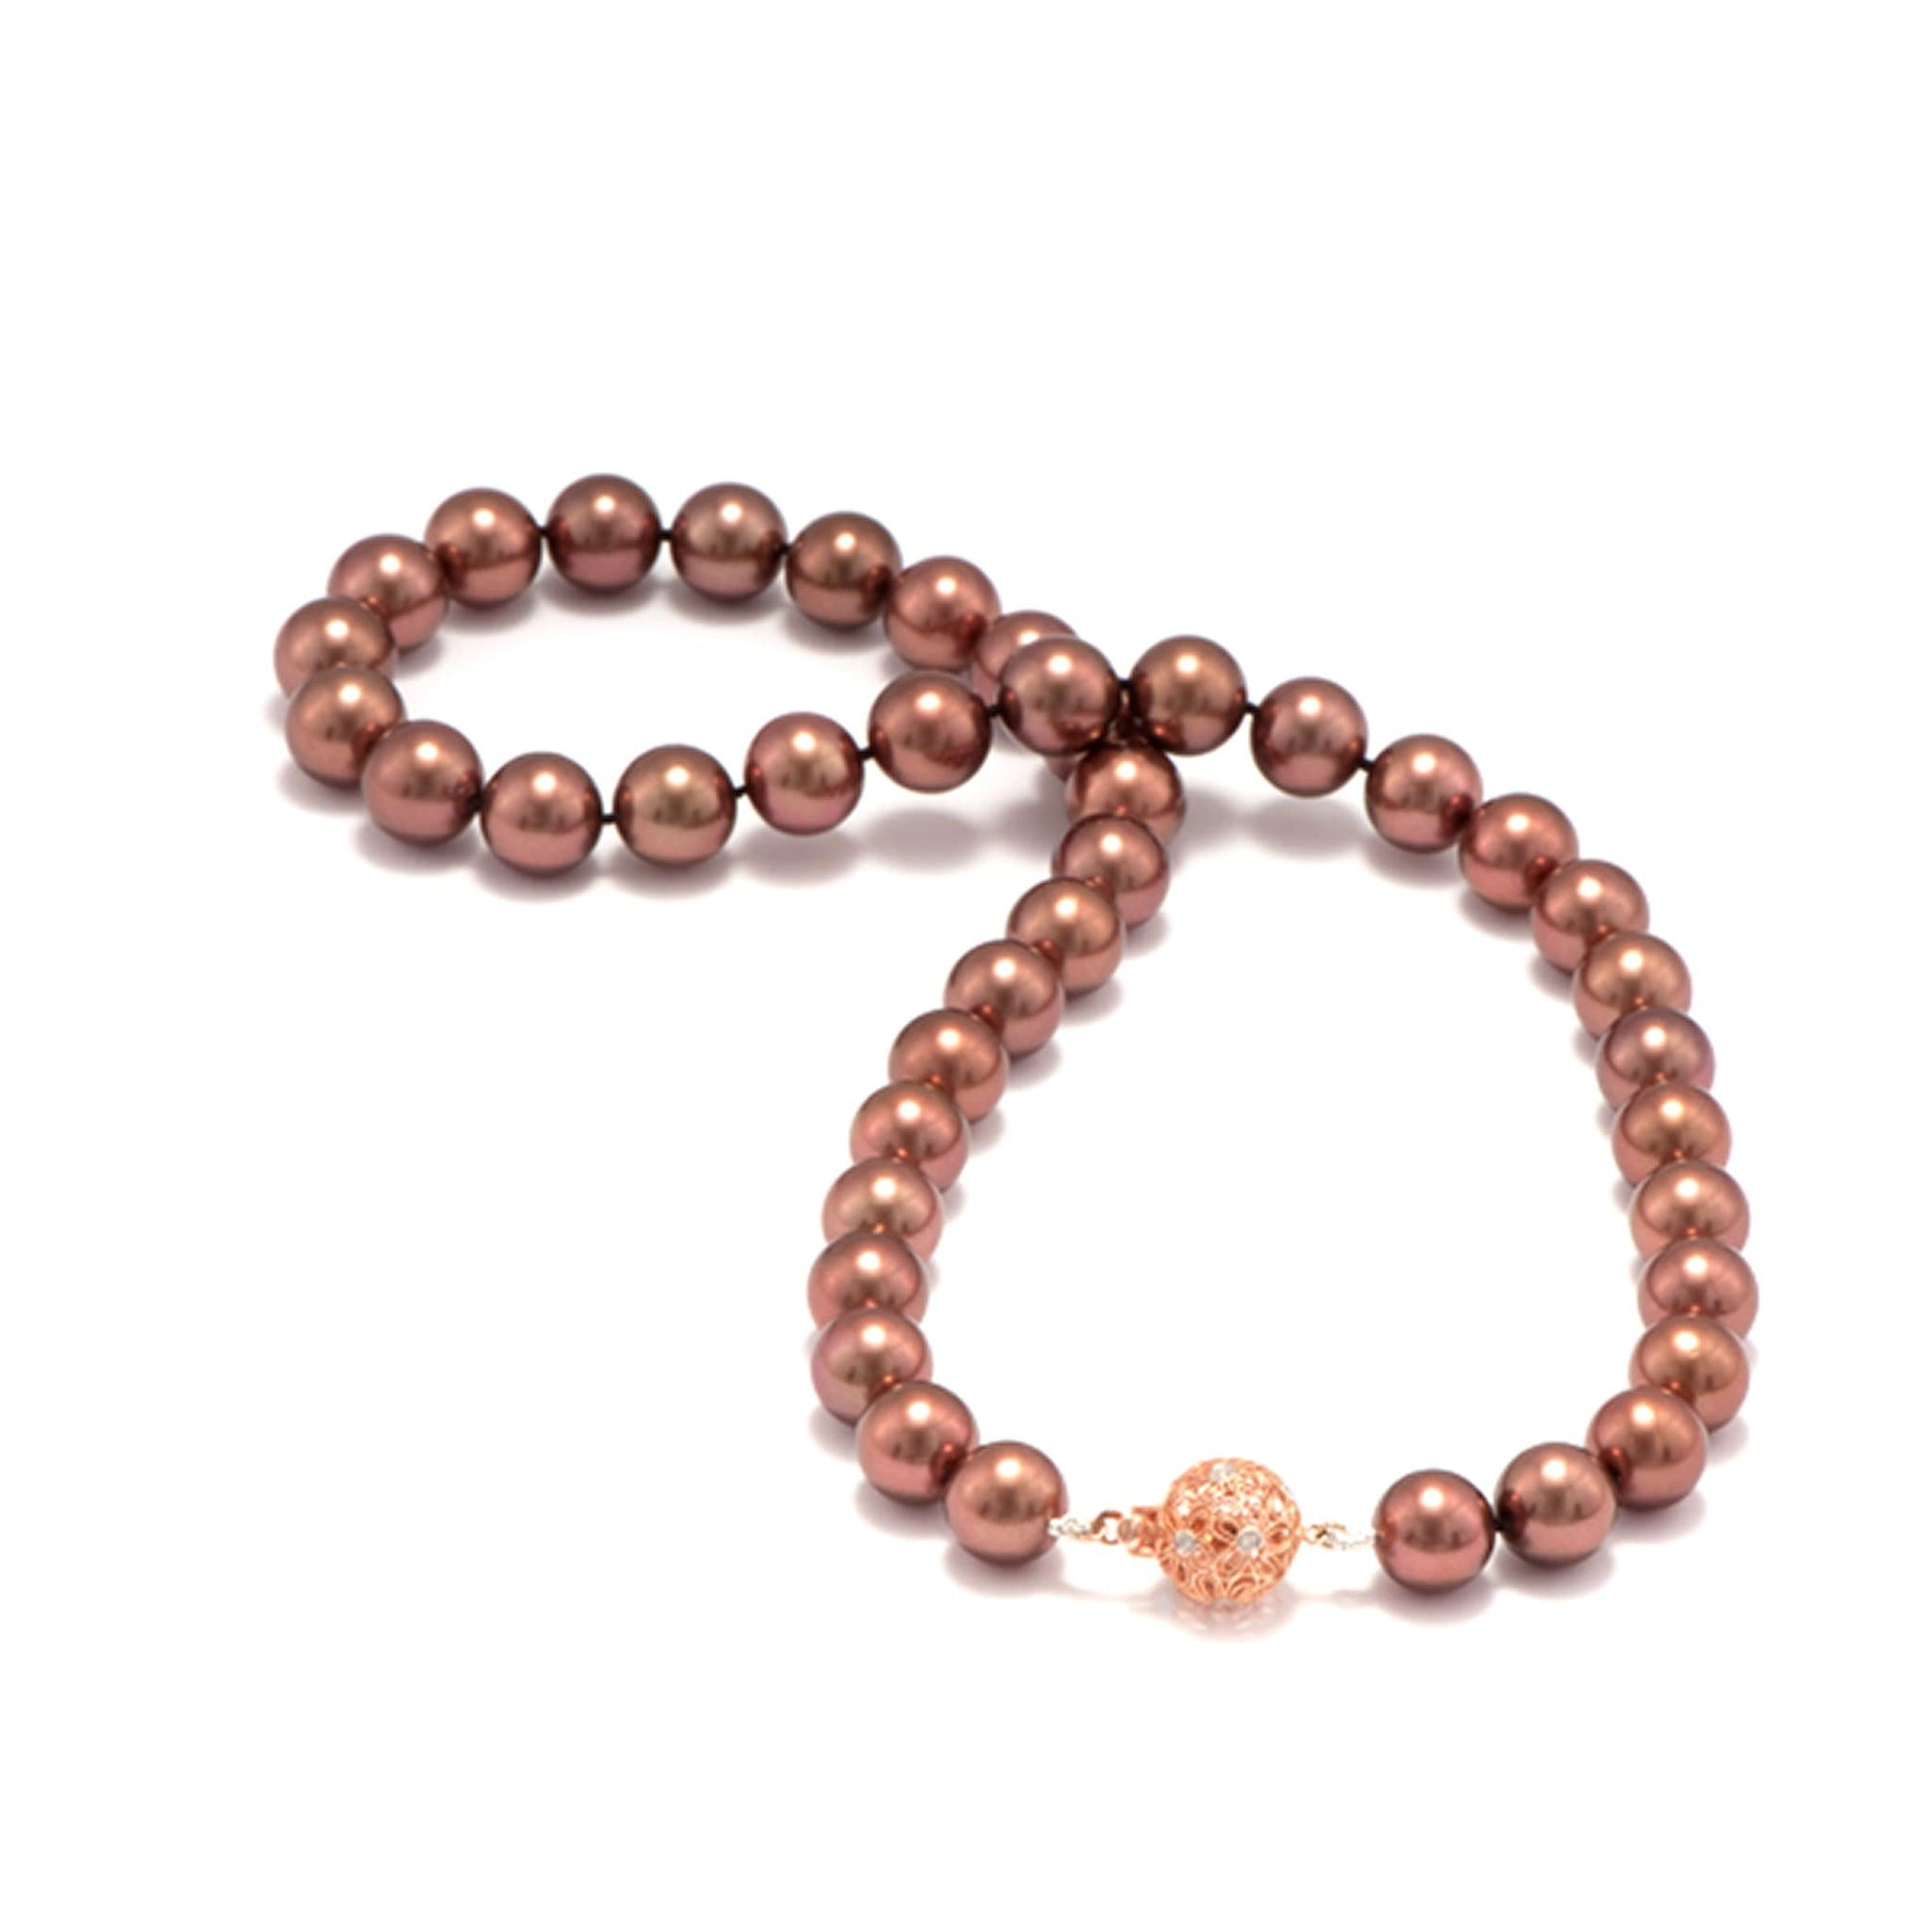 Chocolate Tahitian Pearl Strand in 14K Rose Gold (10-11mm) - Maui Divers Jewelry